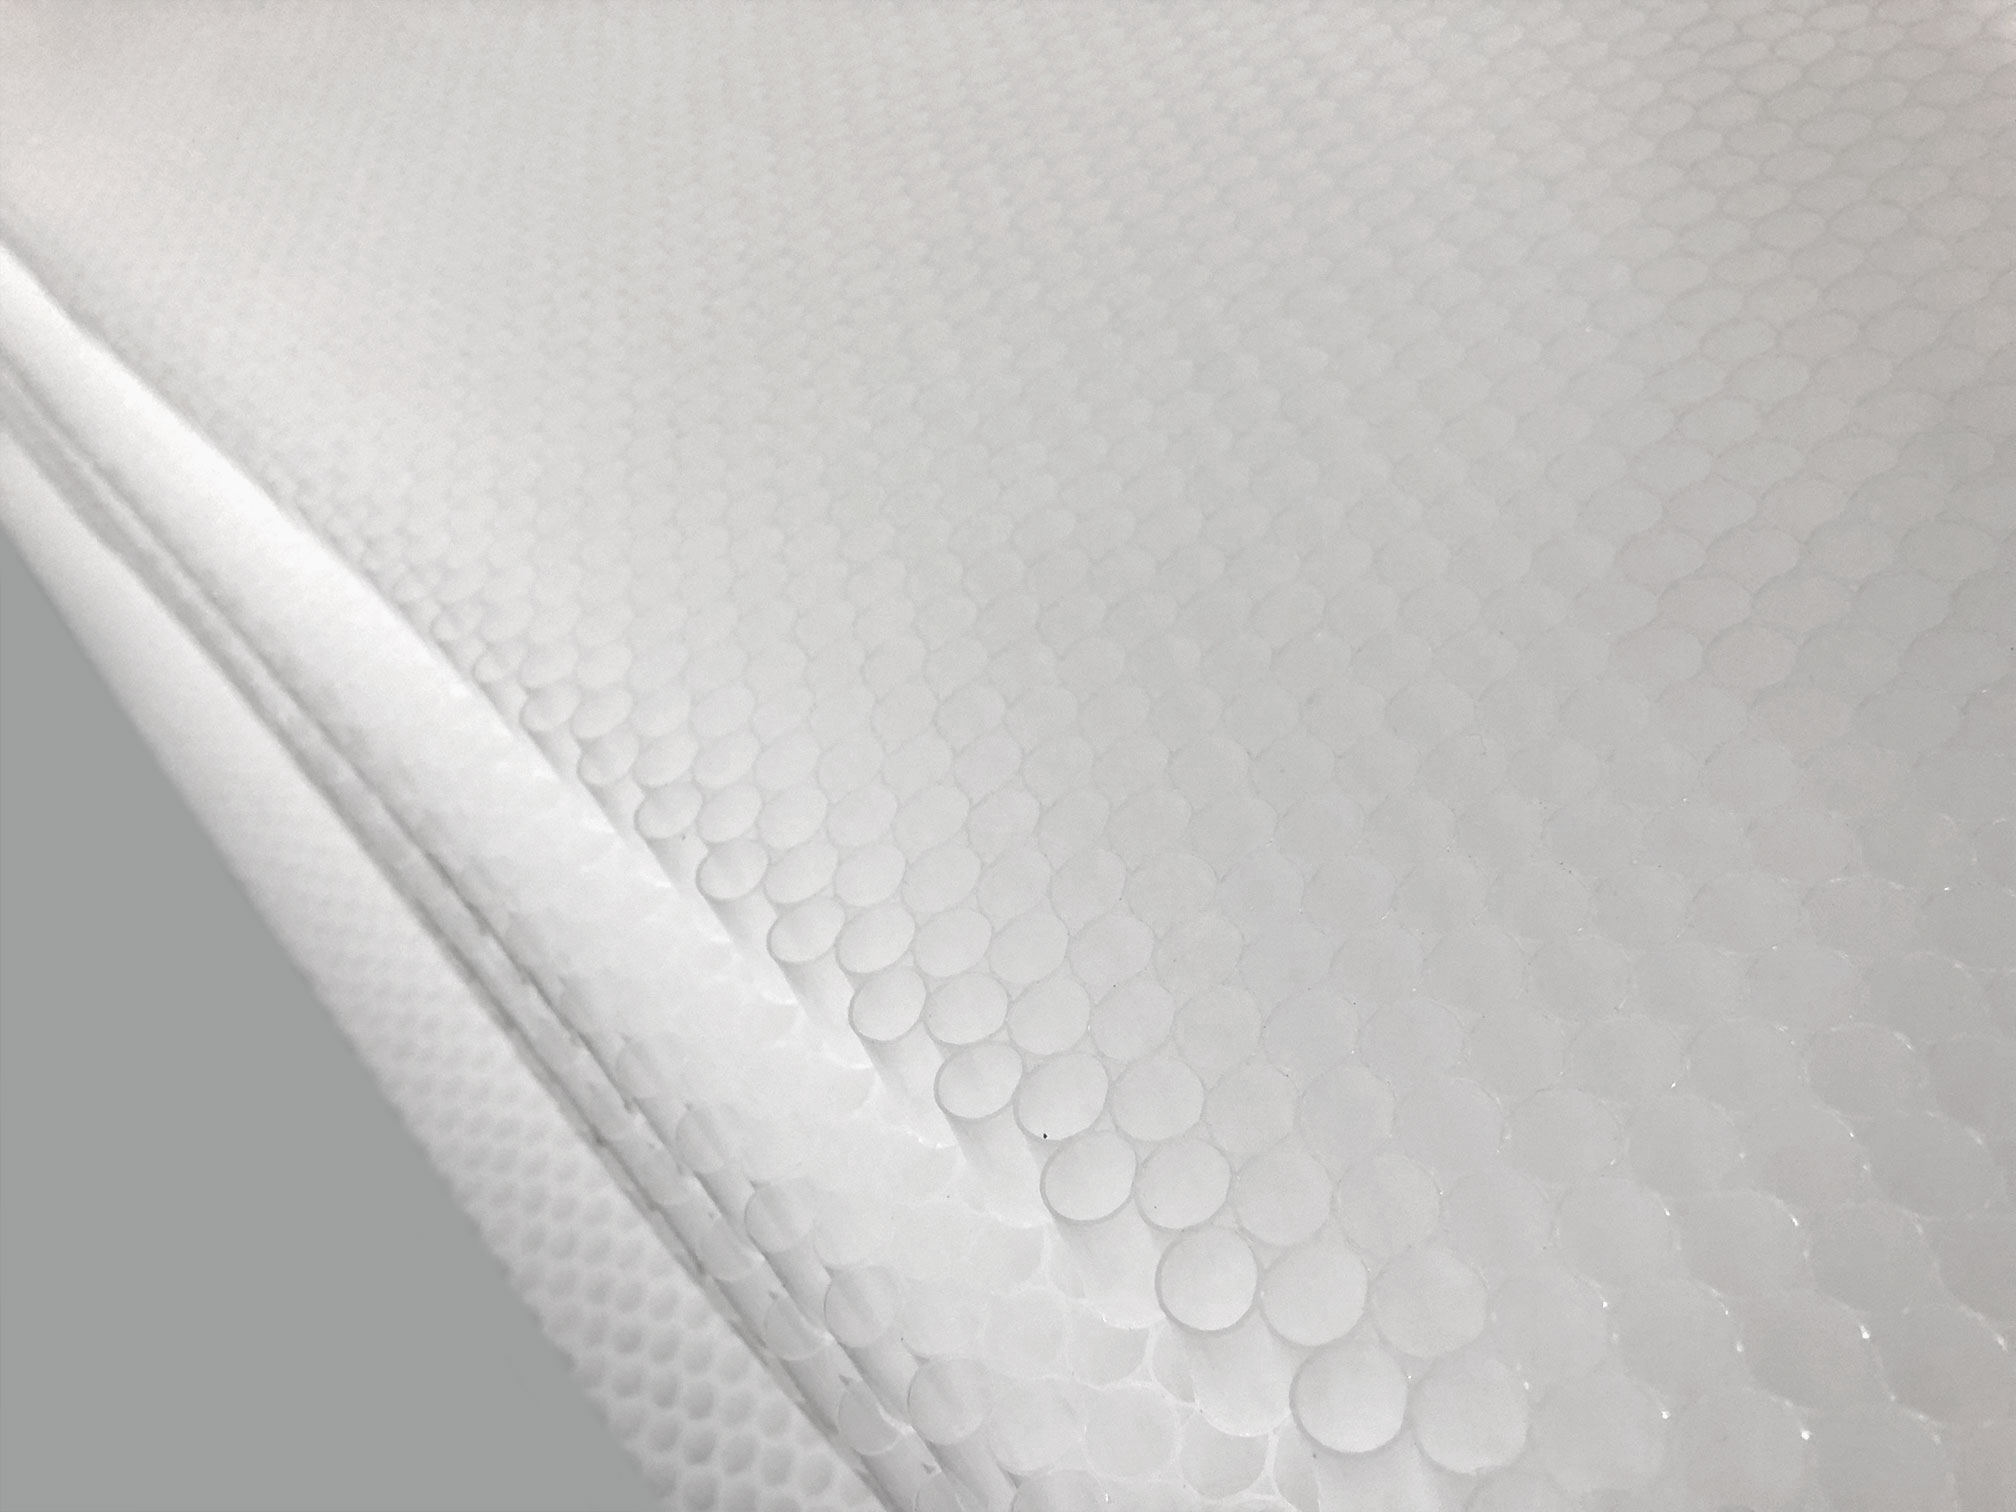 PP honeycomb core for yachts